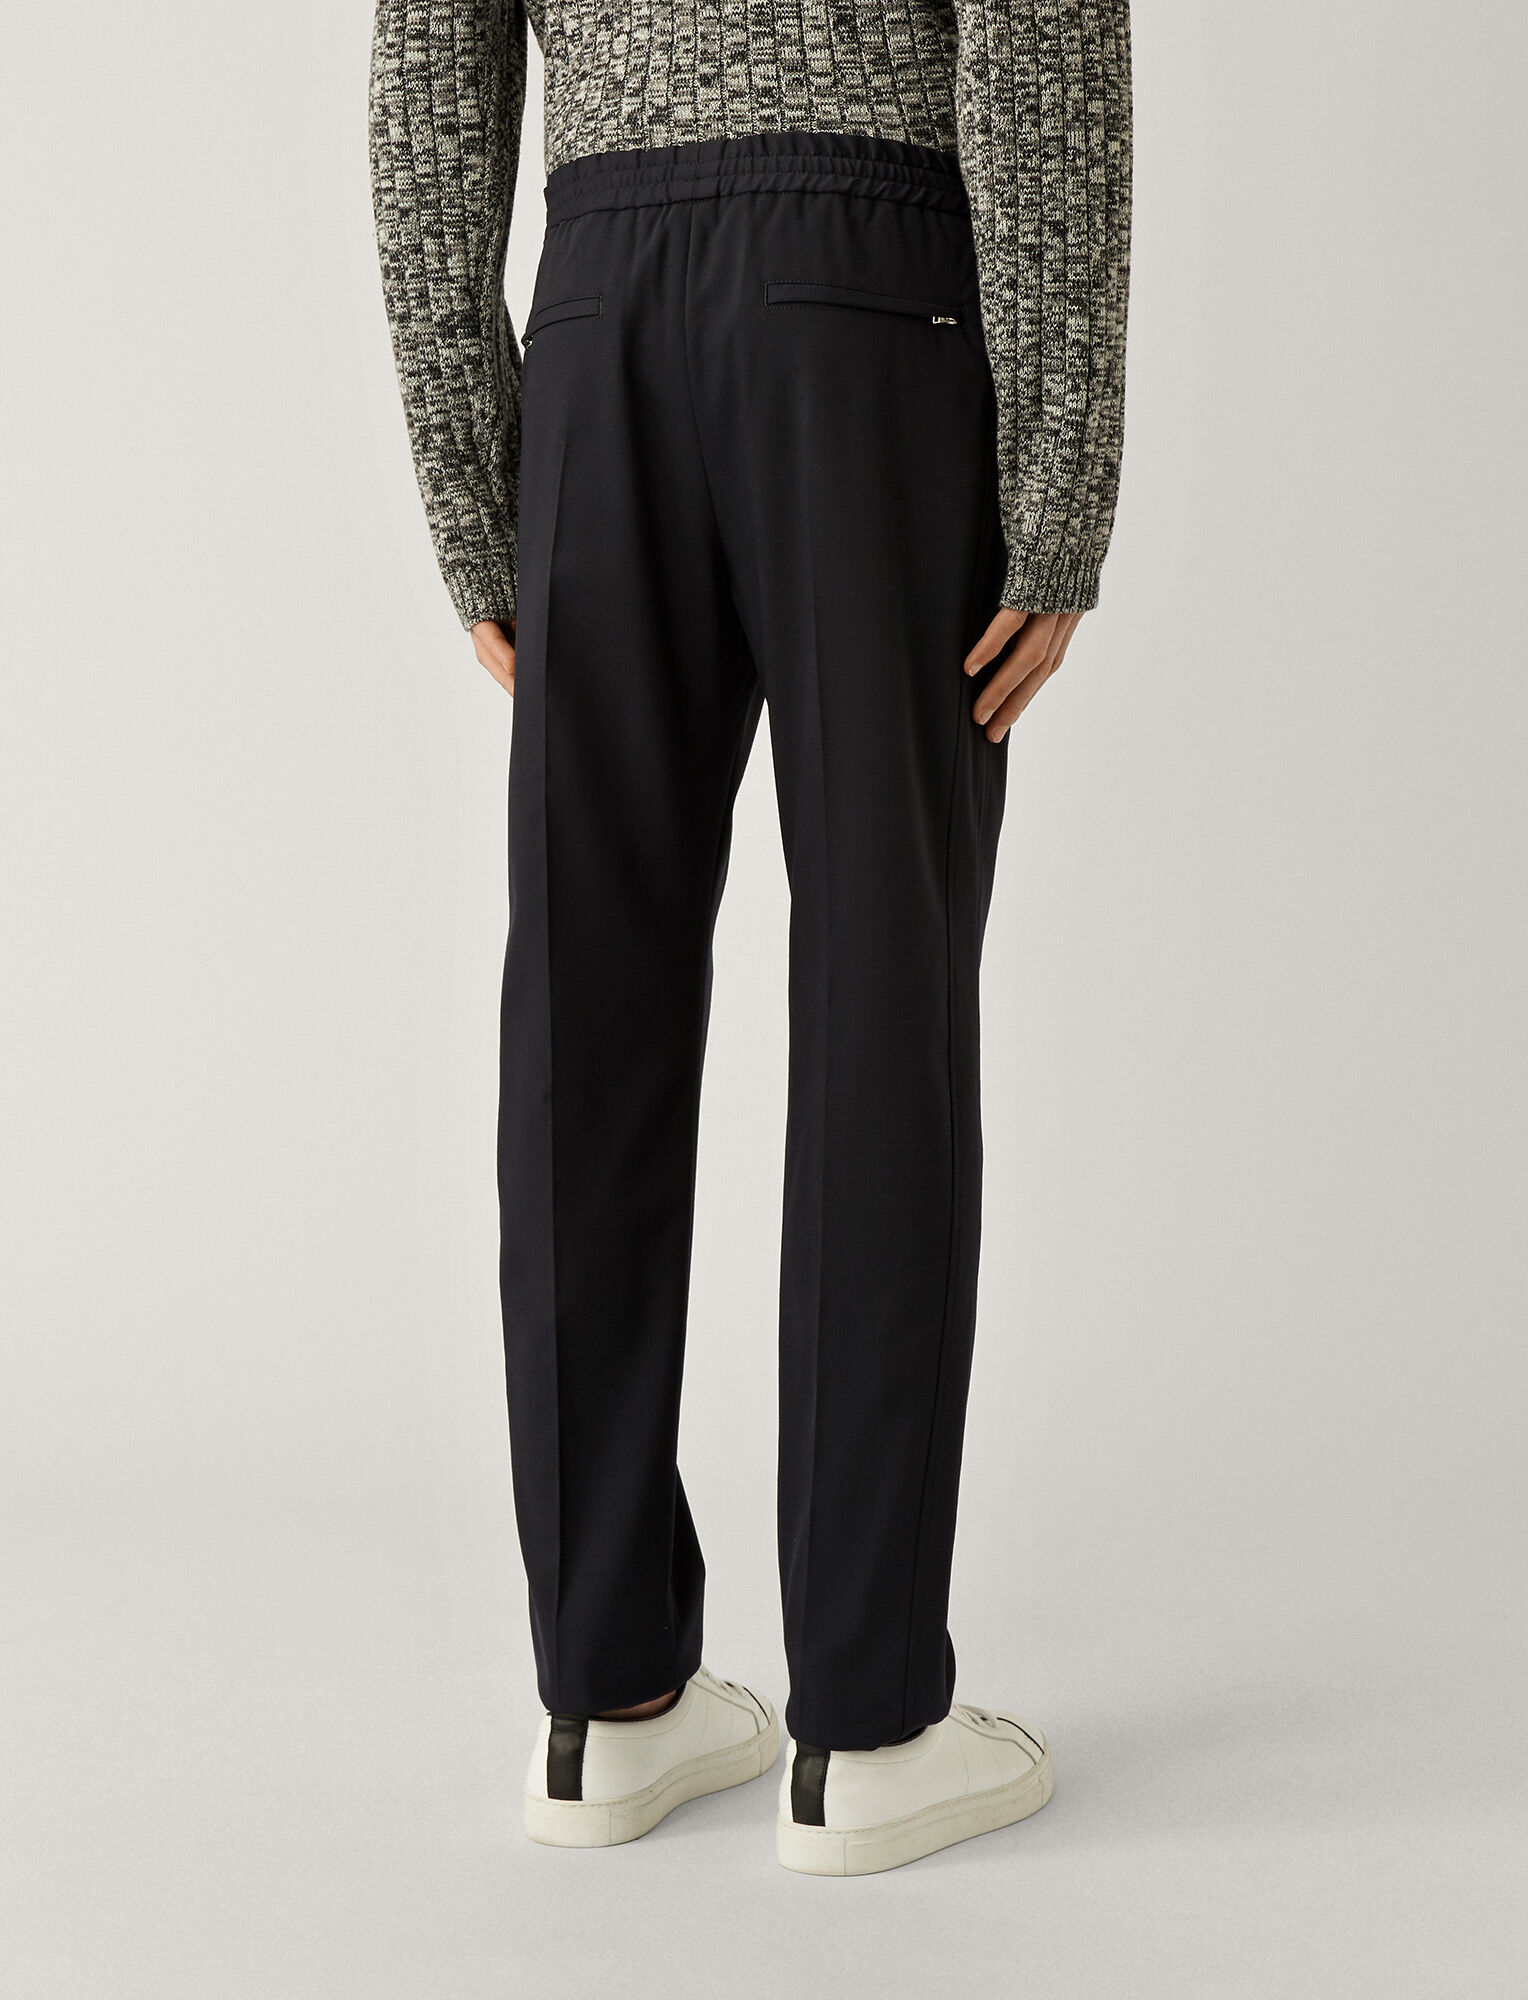 Joseph, Ettrick Fine Comfort Wool Trousers, in NAVY